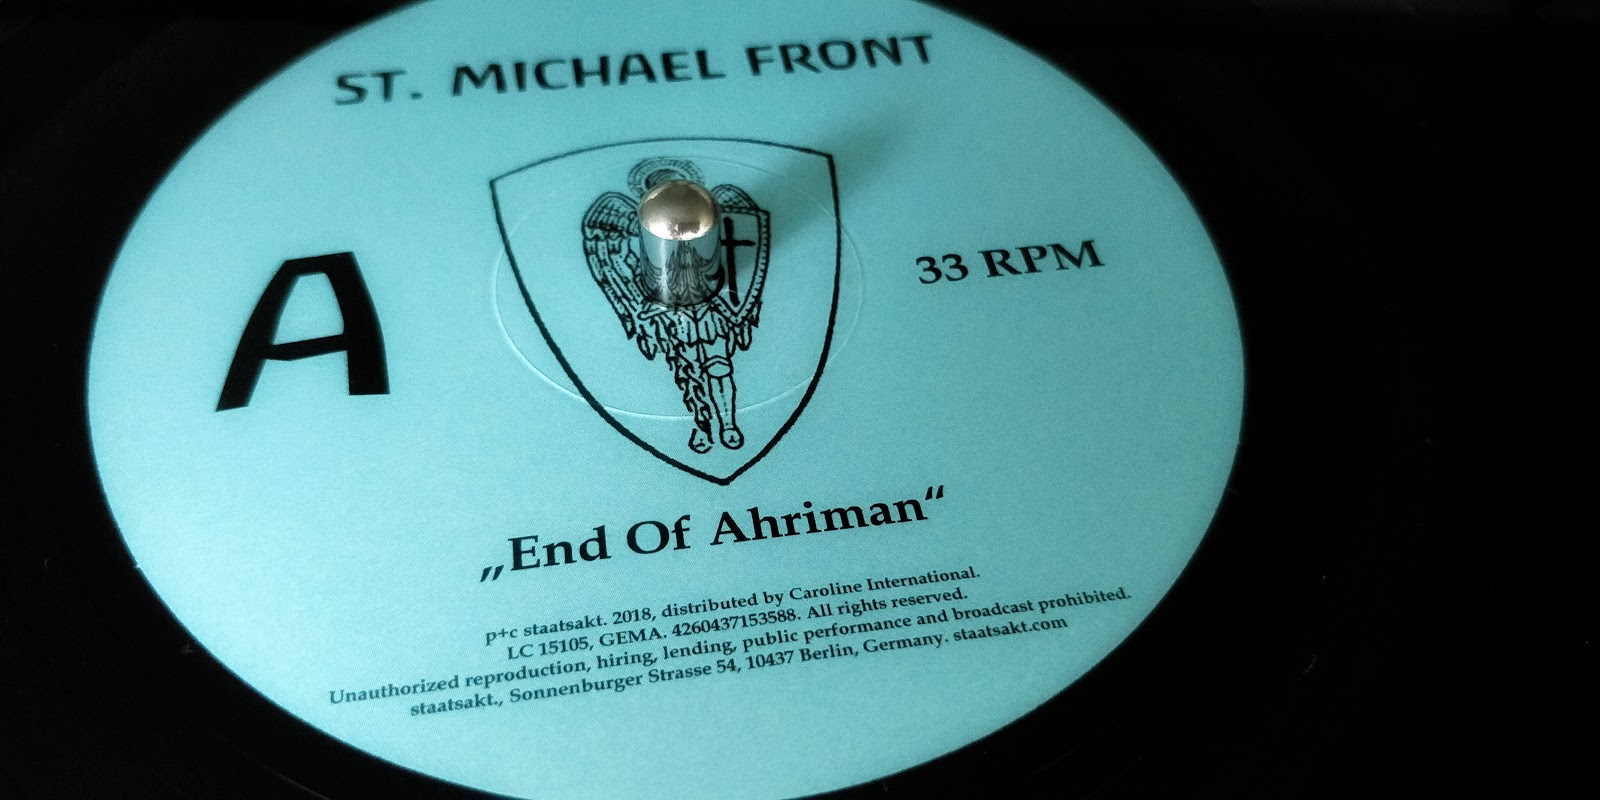 St. Michael Front – End Of Ahriman | Vinylbesprechung im Atomlabor ...